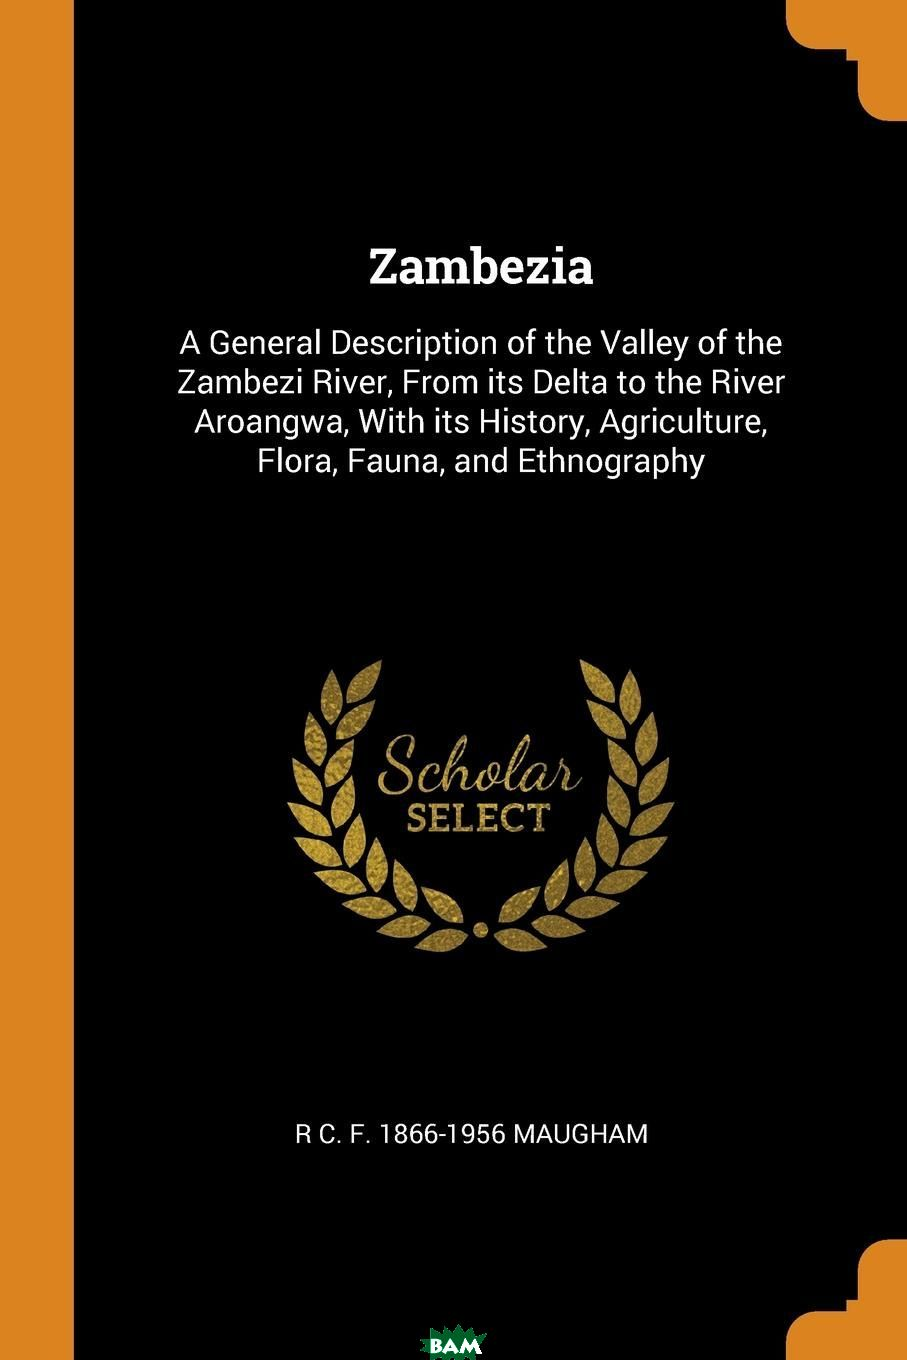 Купить Zambezia. A General Description of the Valley of the Zambezi River, From its Delta to the River Aroangwa, With its History, Agriculture, Flora, Fauna, and Ethnography, R C. F. 1866-1956 Maugham, 9780342619788